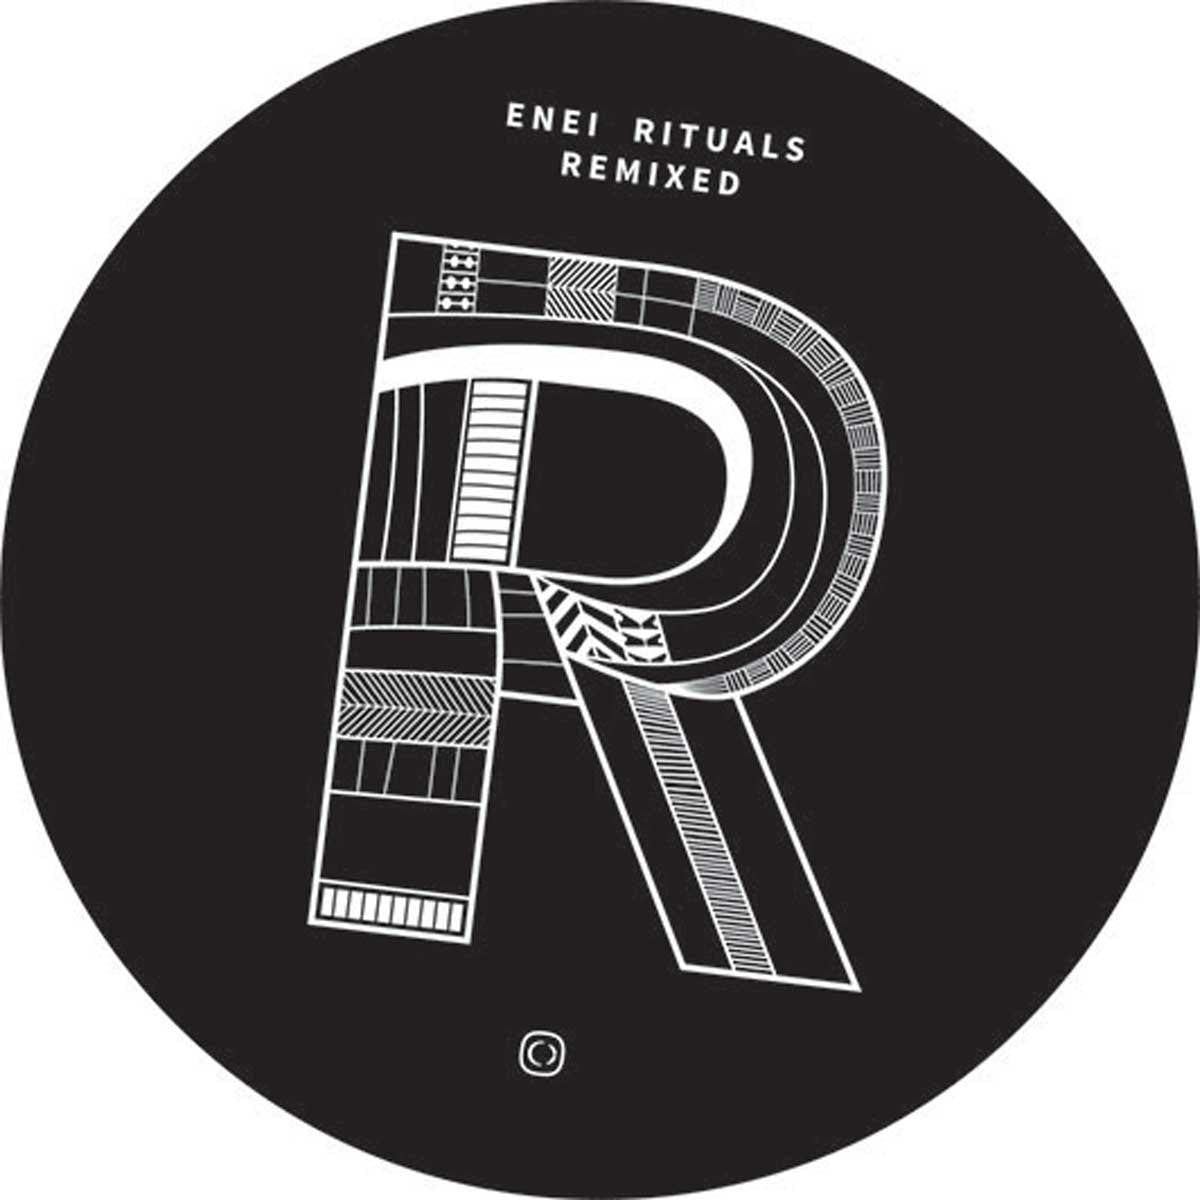 Enei - Rituals Remixed , Vinyl - Critical Music, Unearthed Sounds